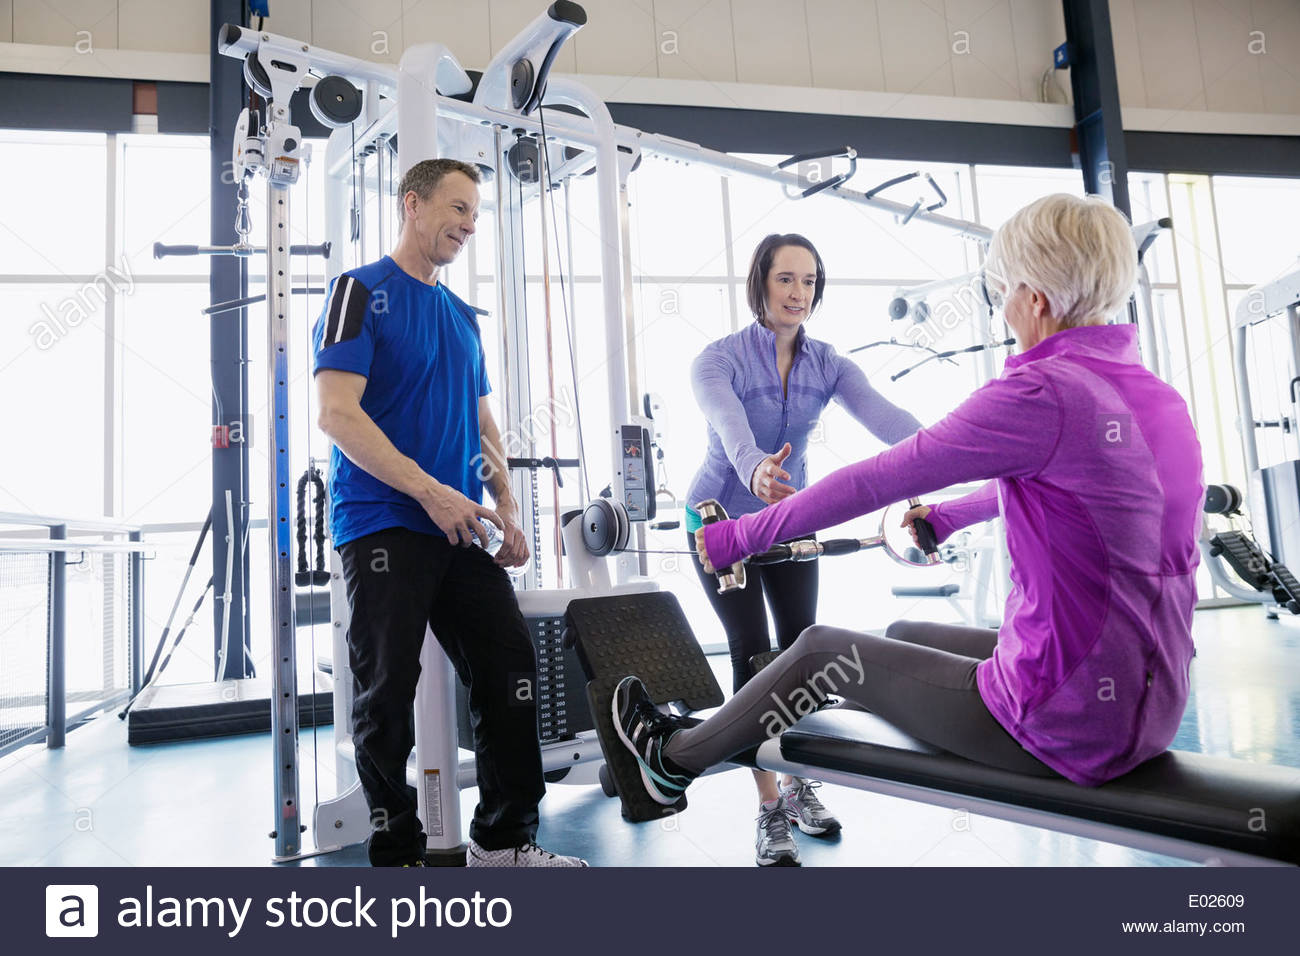 People using weight machines at gym - Stock Image